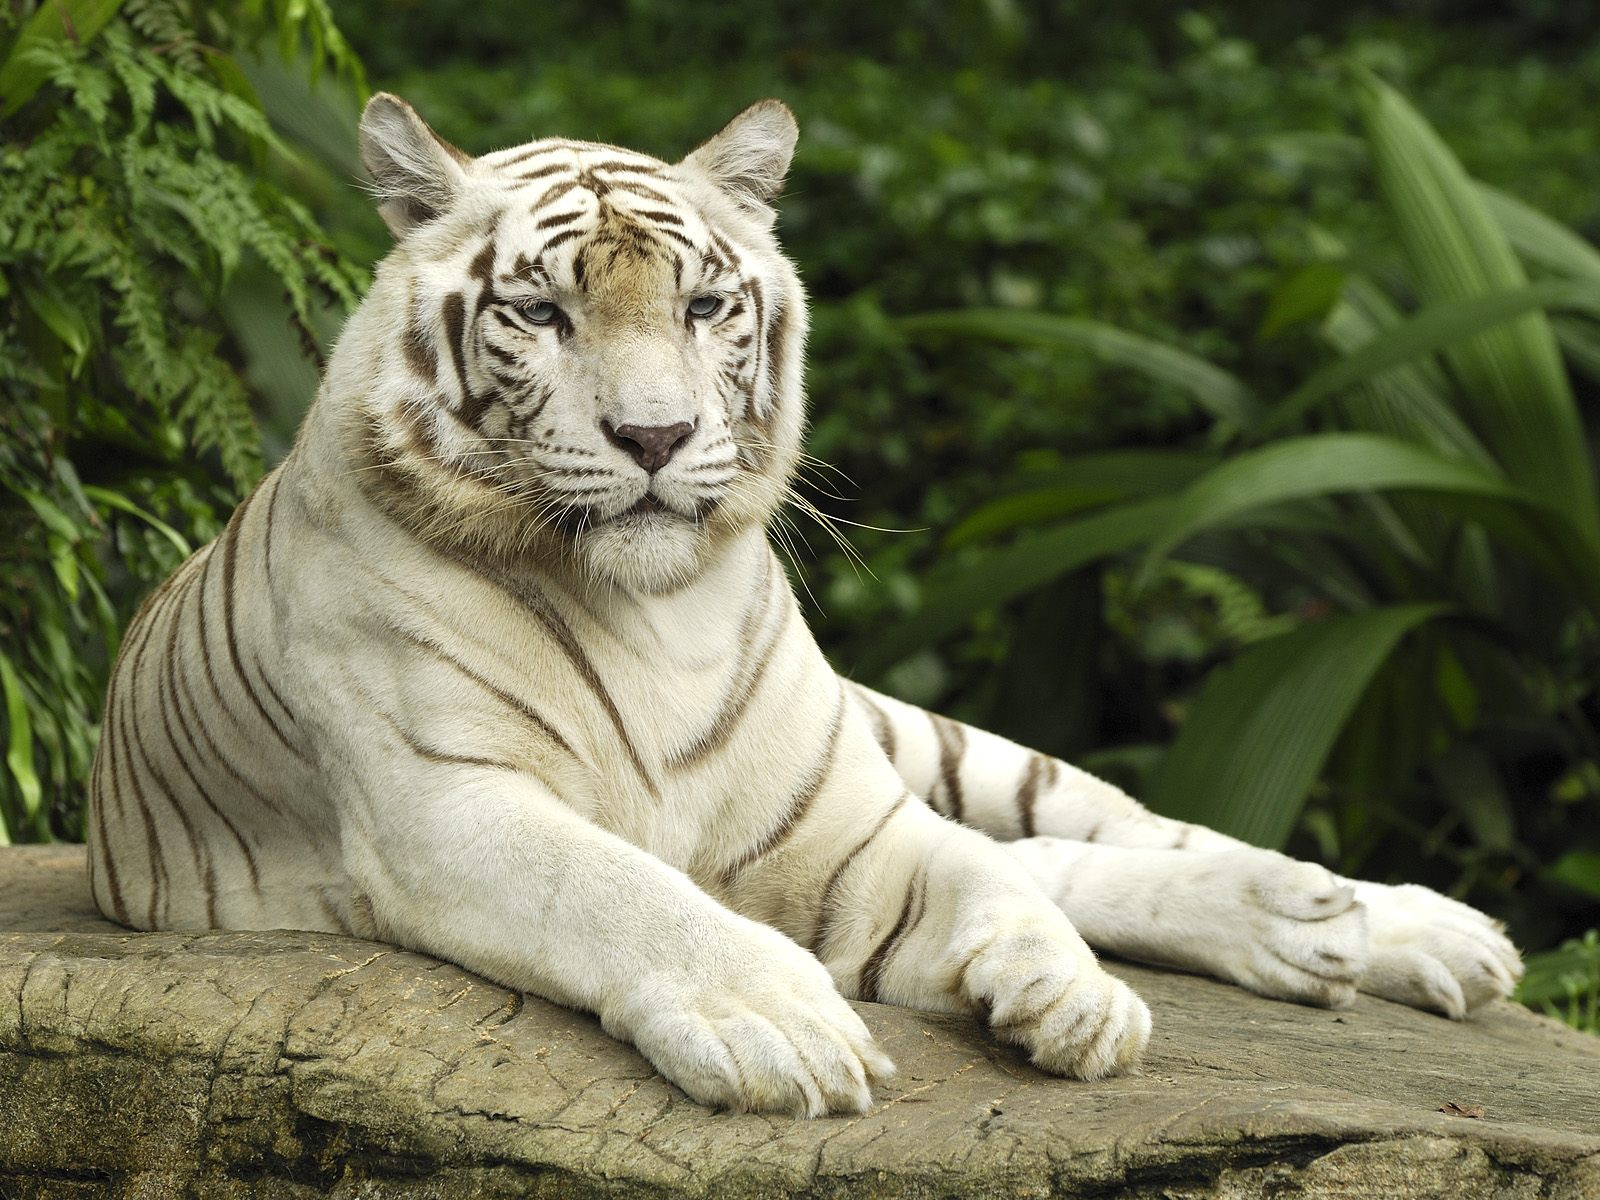 Tigers hd wallpaper 2013 white bengal tigers hd wallpaper 2013